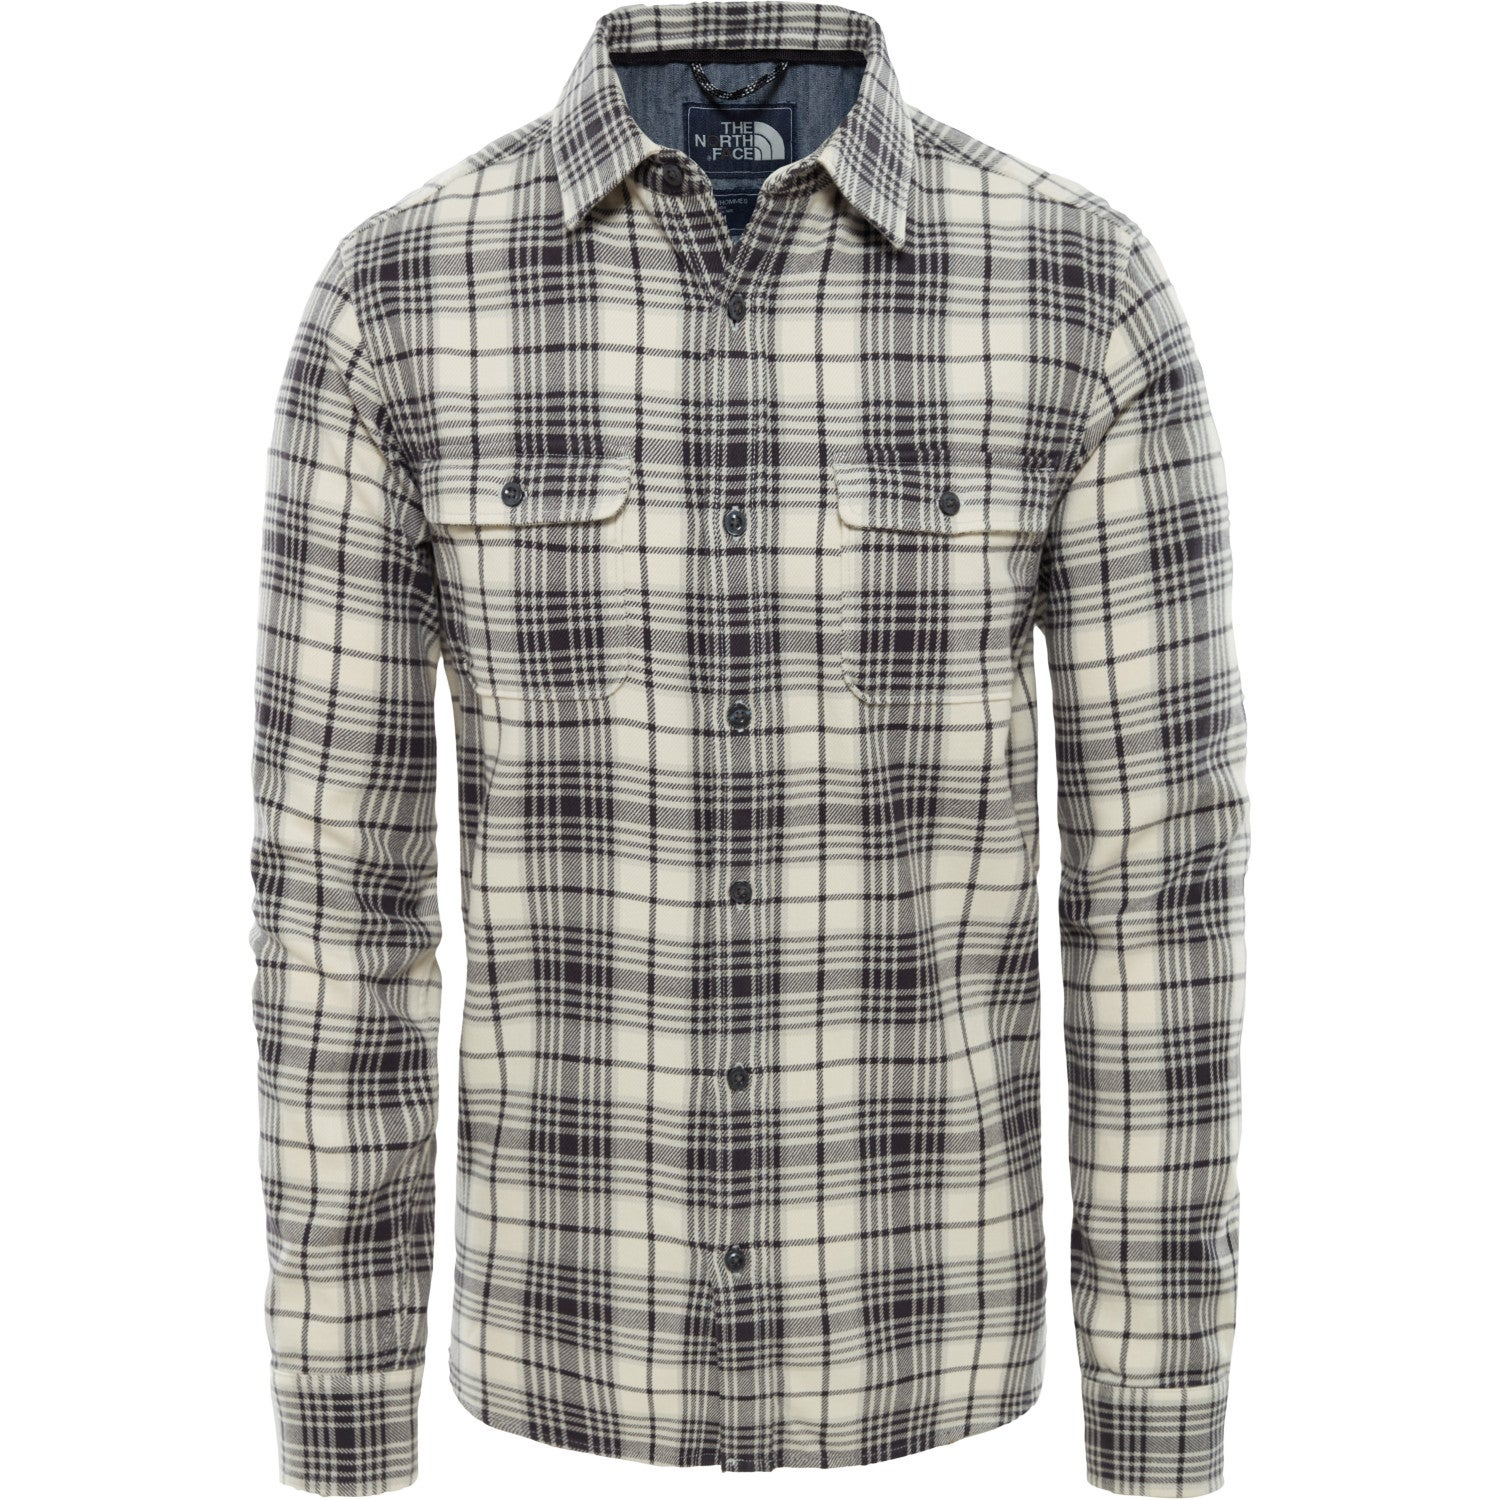 2e19ffb1b North Face Arroyo Flannel Shirt available from Blackleaf